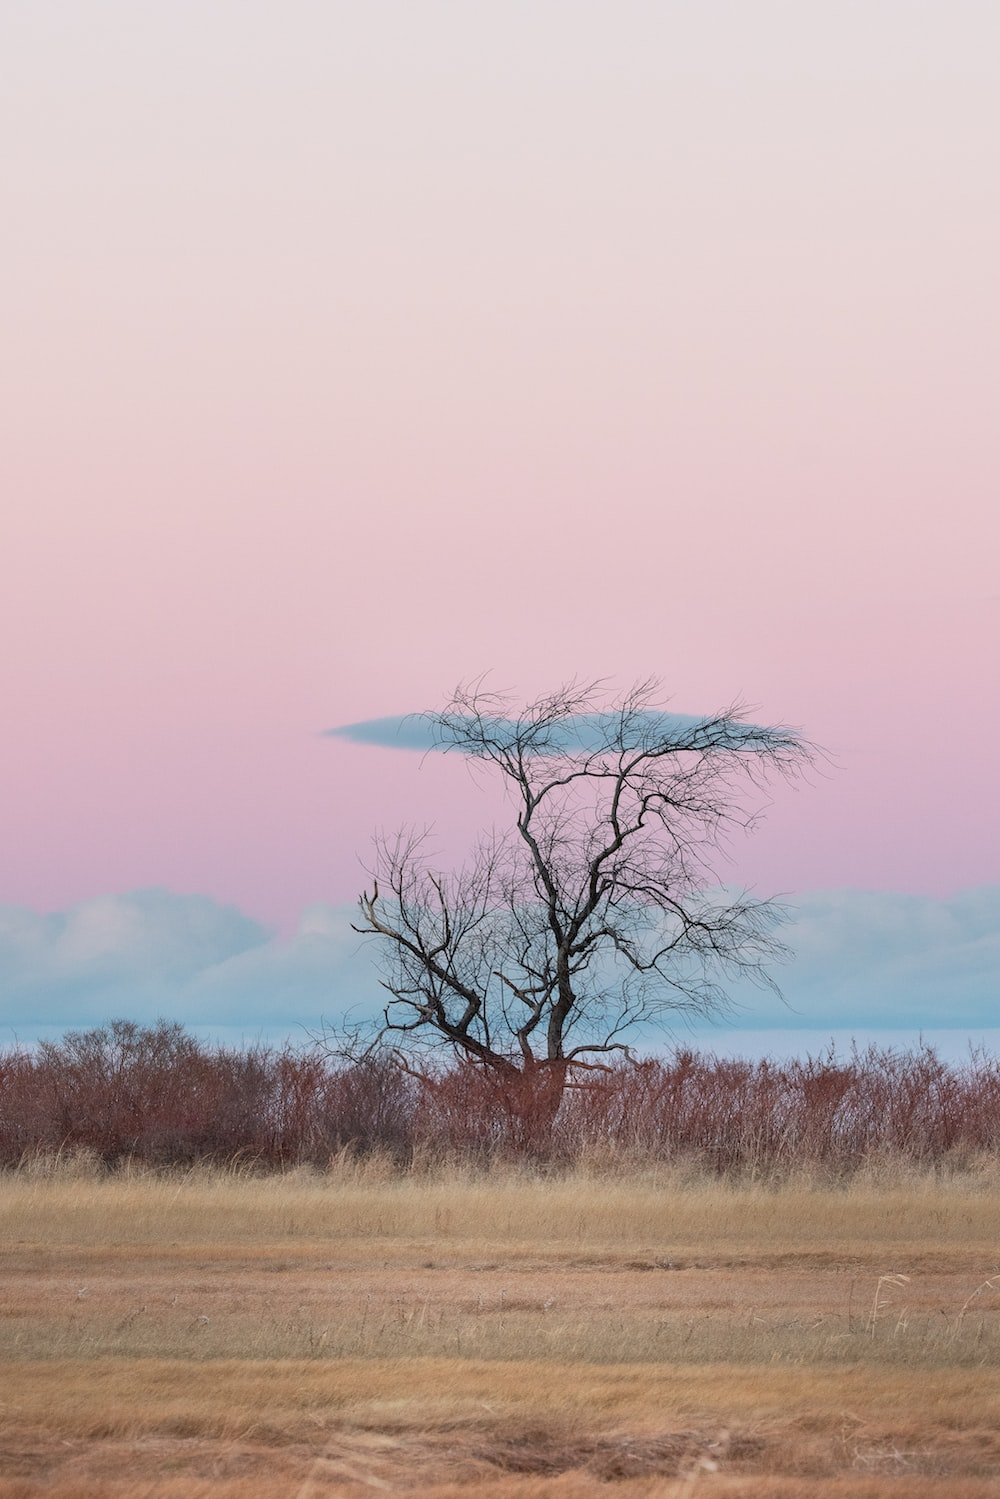 lone tall tree across brown grass field under pink sky